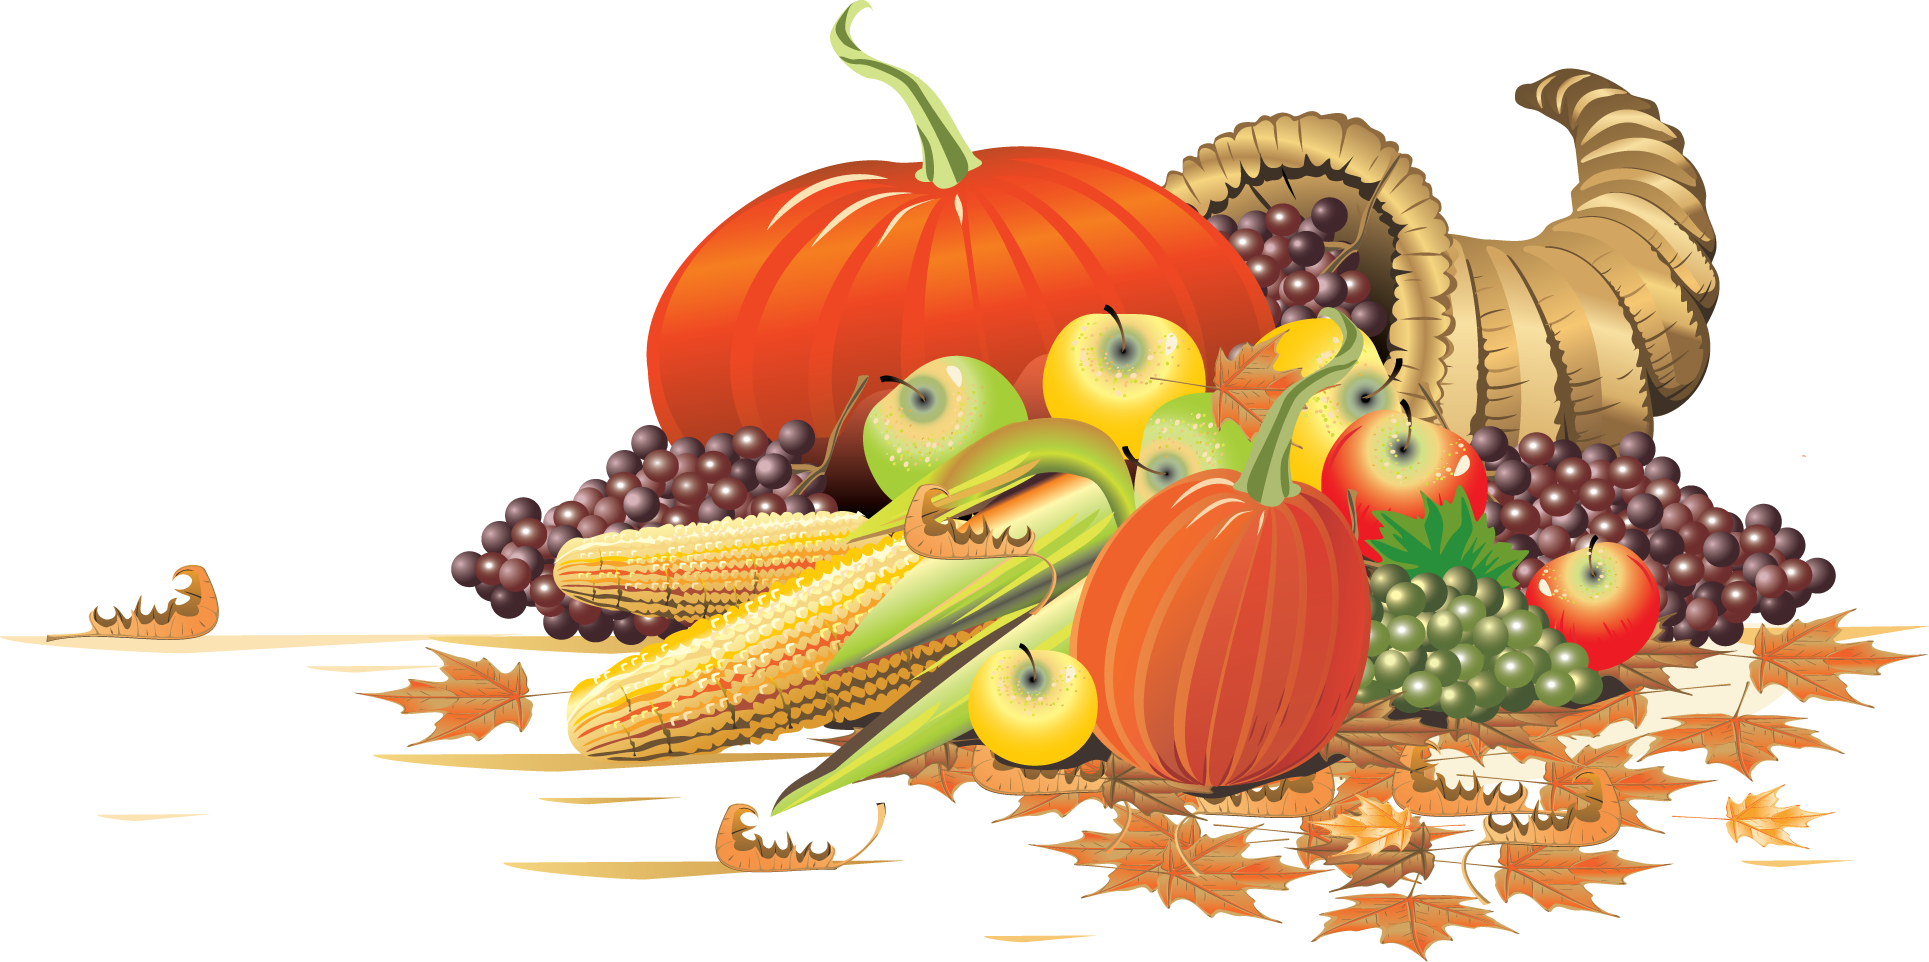 Thanksgiving clipart png transparent royalty free Parish Office Closed - Wed-Fri this week for Thanksgiving! - Saint ... royalty free